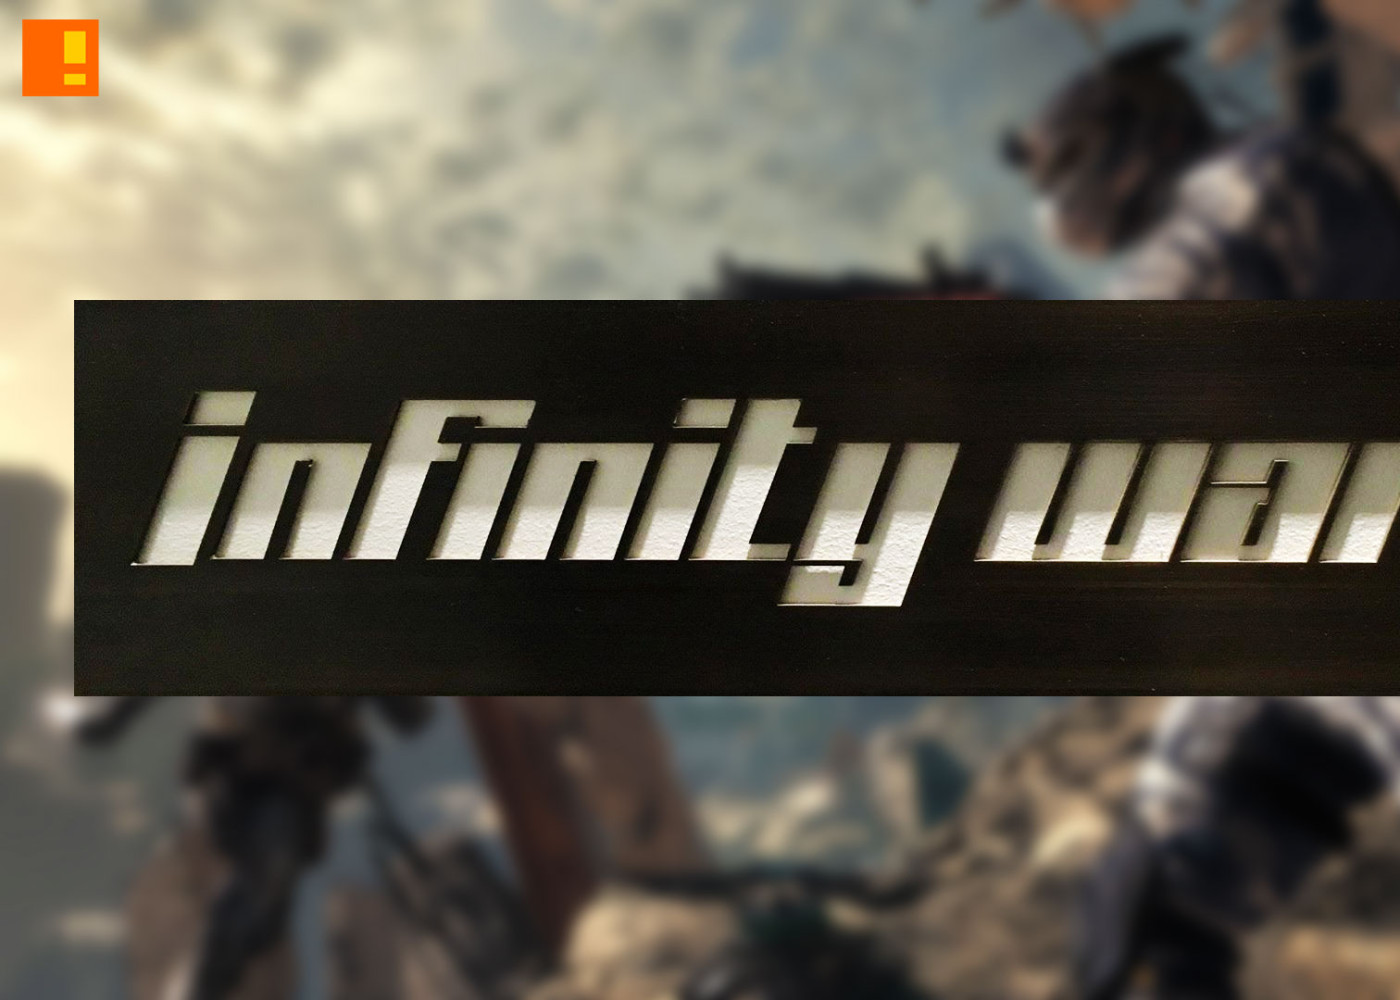 cod infinity ward. the action pixel, call of duty. entertainment on tap. @theactionpixel